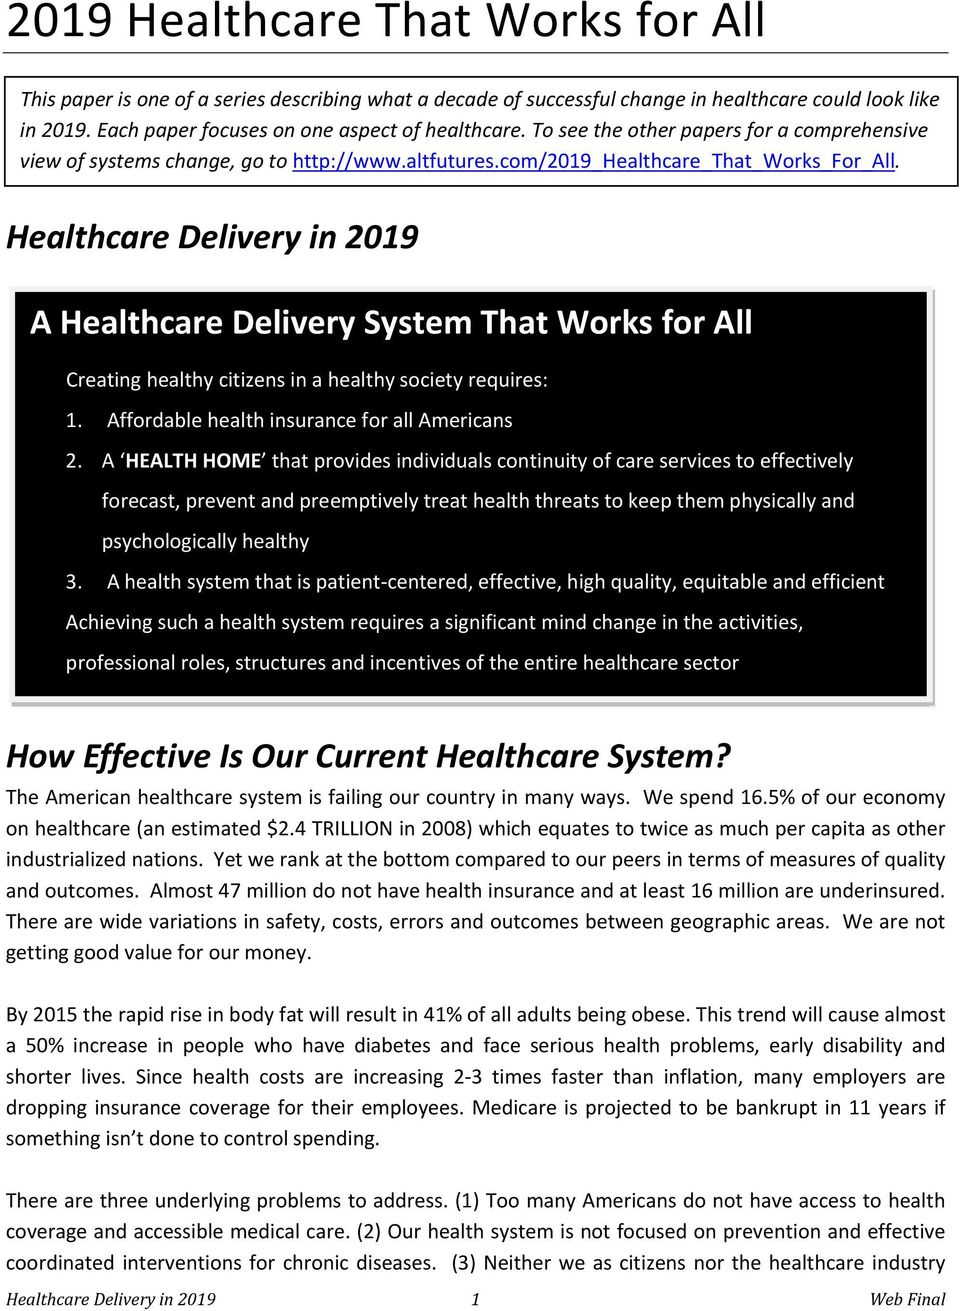 Healthcare Delivery in 2019 A Healthcare Delivery System That Works for All Creating healthy citizens in a healthy society requires: 1. Affordable health insurance for all Americans 2.